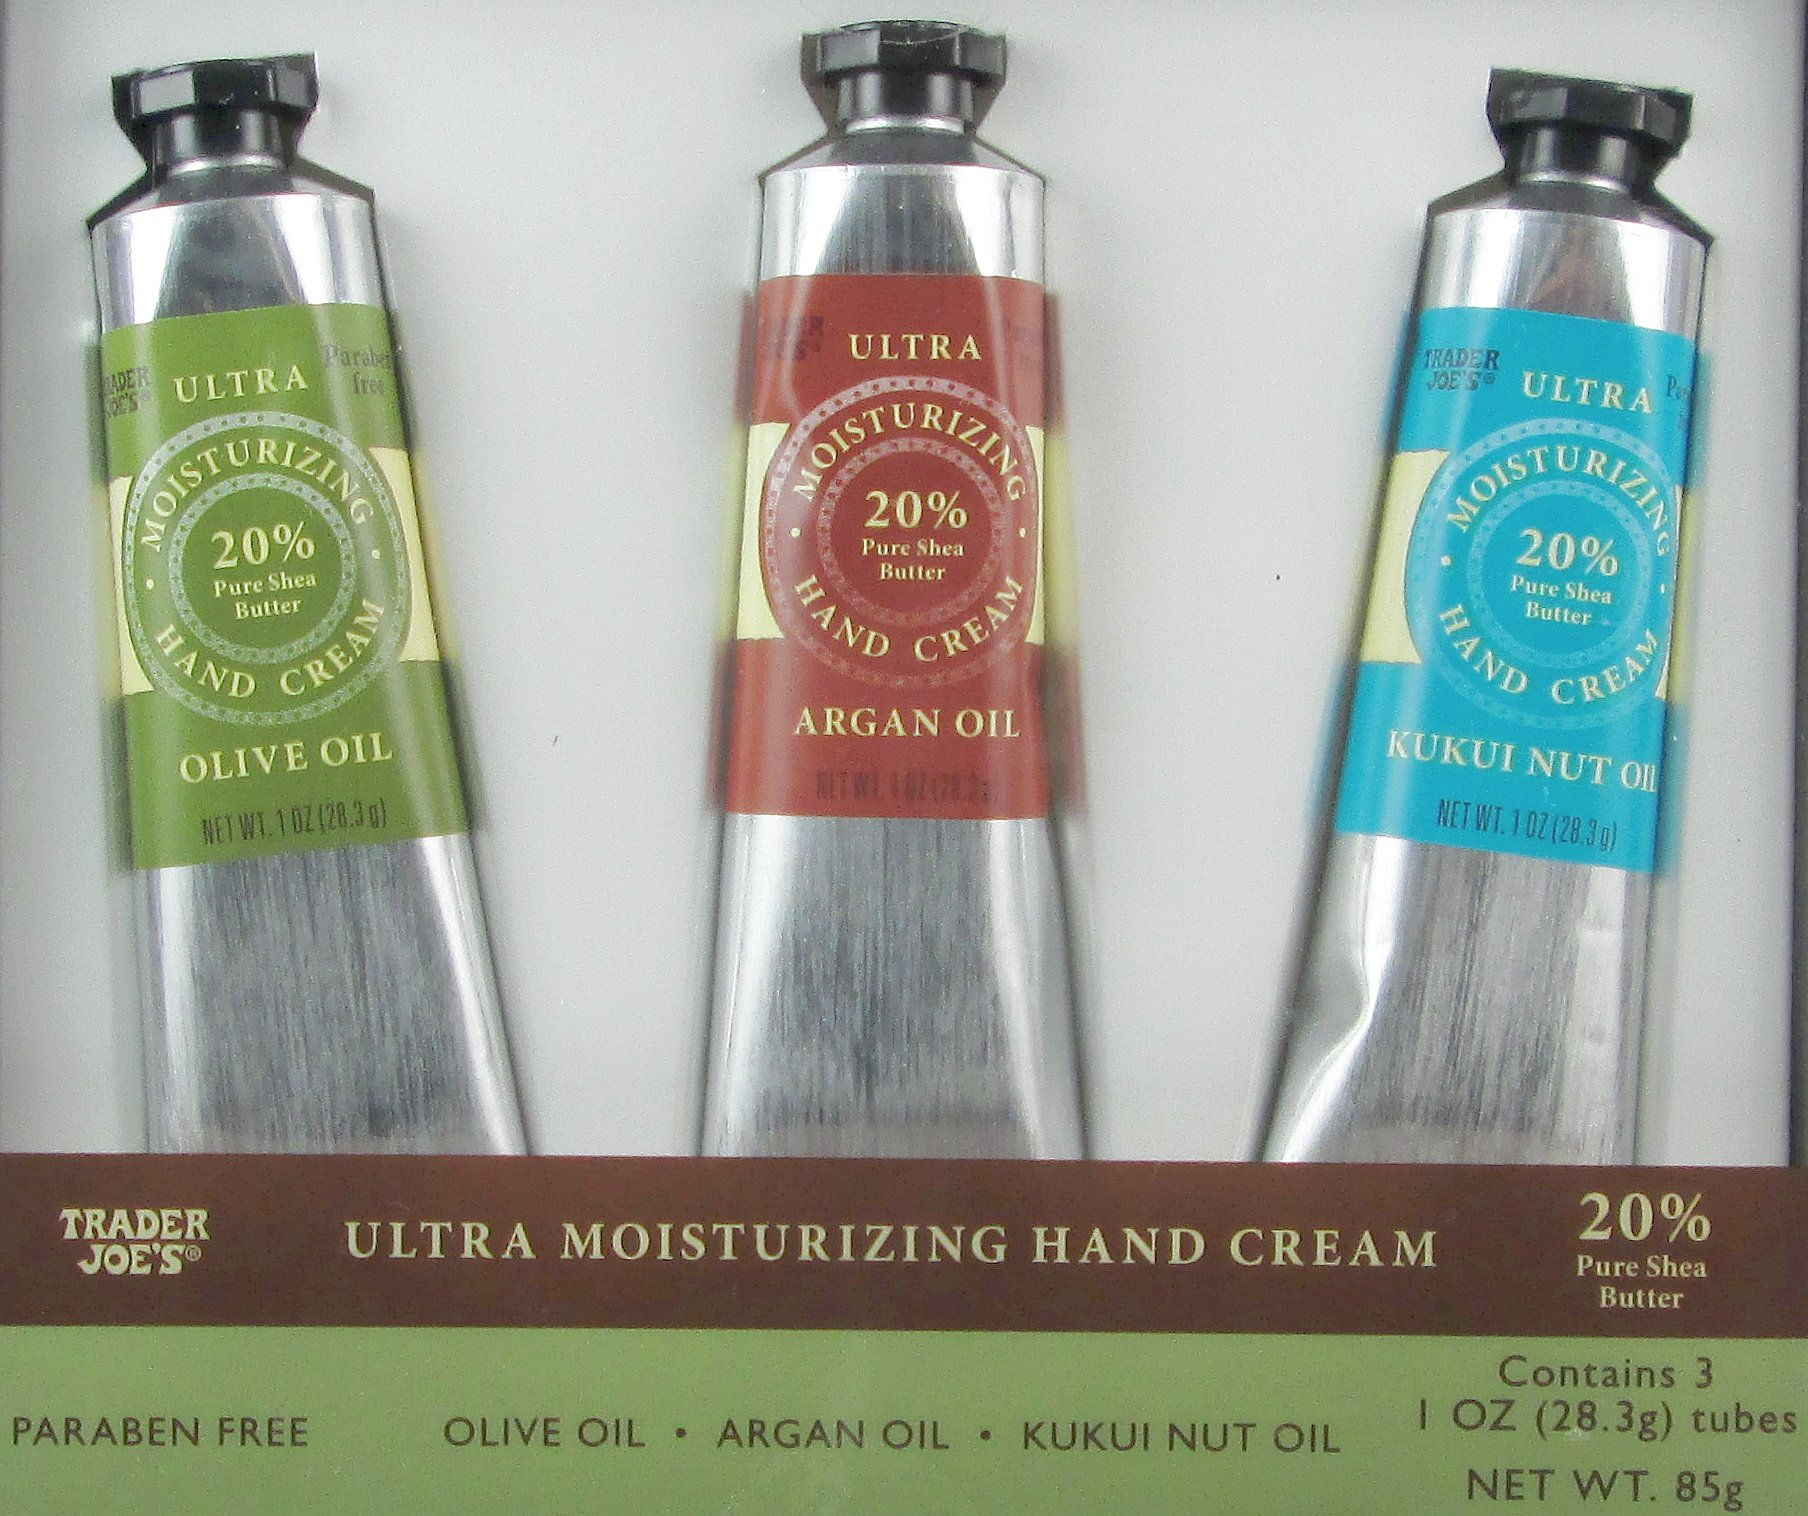 trader joe 39 s ultra moisturizing hand cream 20 pure shea butter enriched with. Black Bedroom Furniture Sets. Home Design Ideas